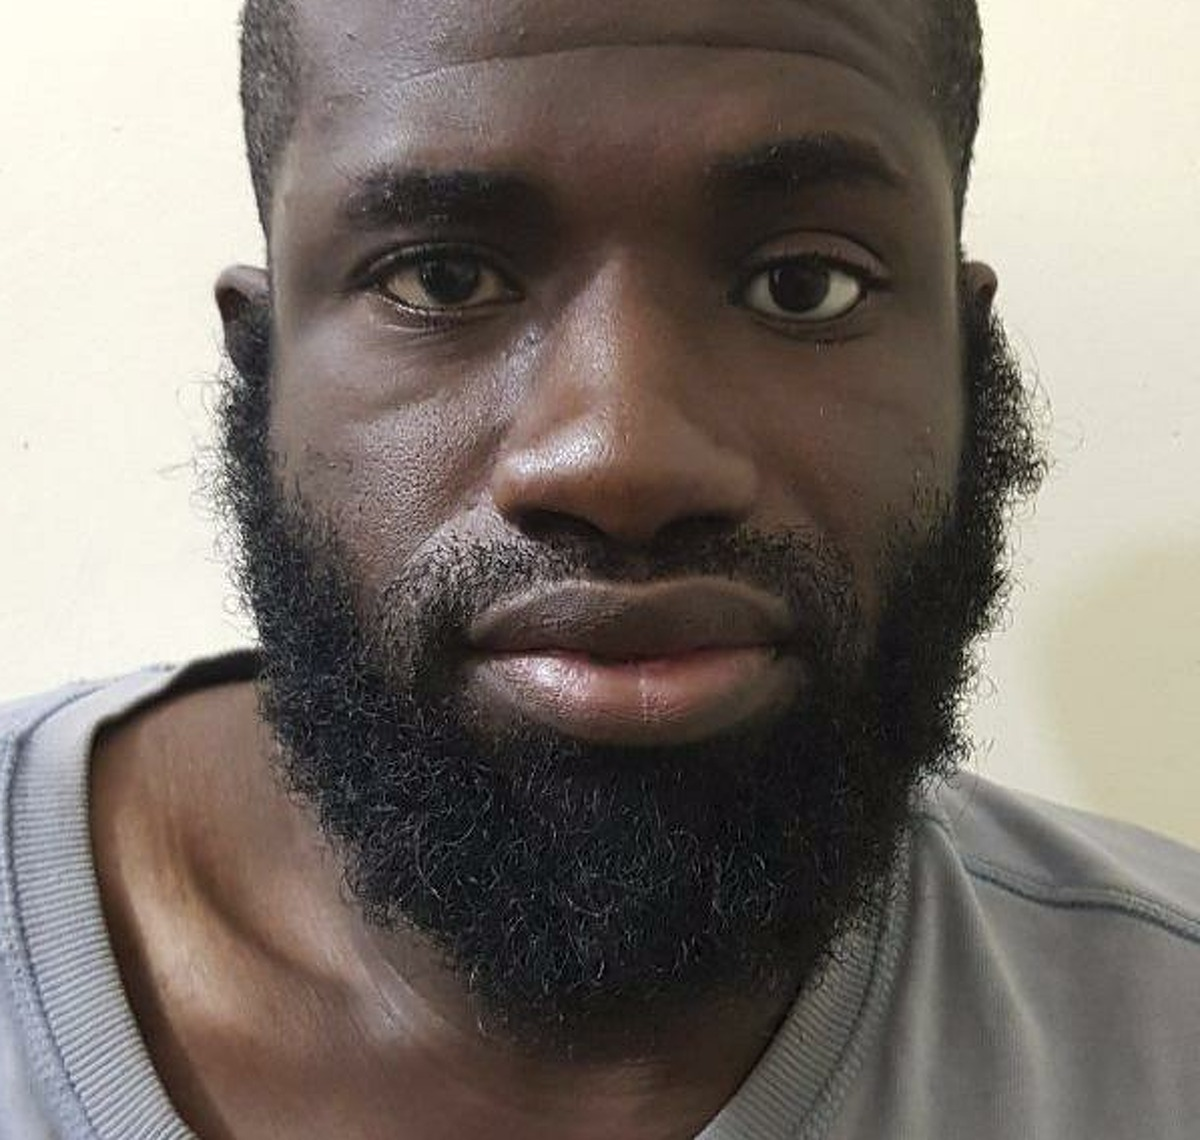 Warren Christopher Clark (Abu Mohammad al-Ameriki),  was among five people captured by Syrian Democratic Forces in Syria in early January.